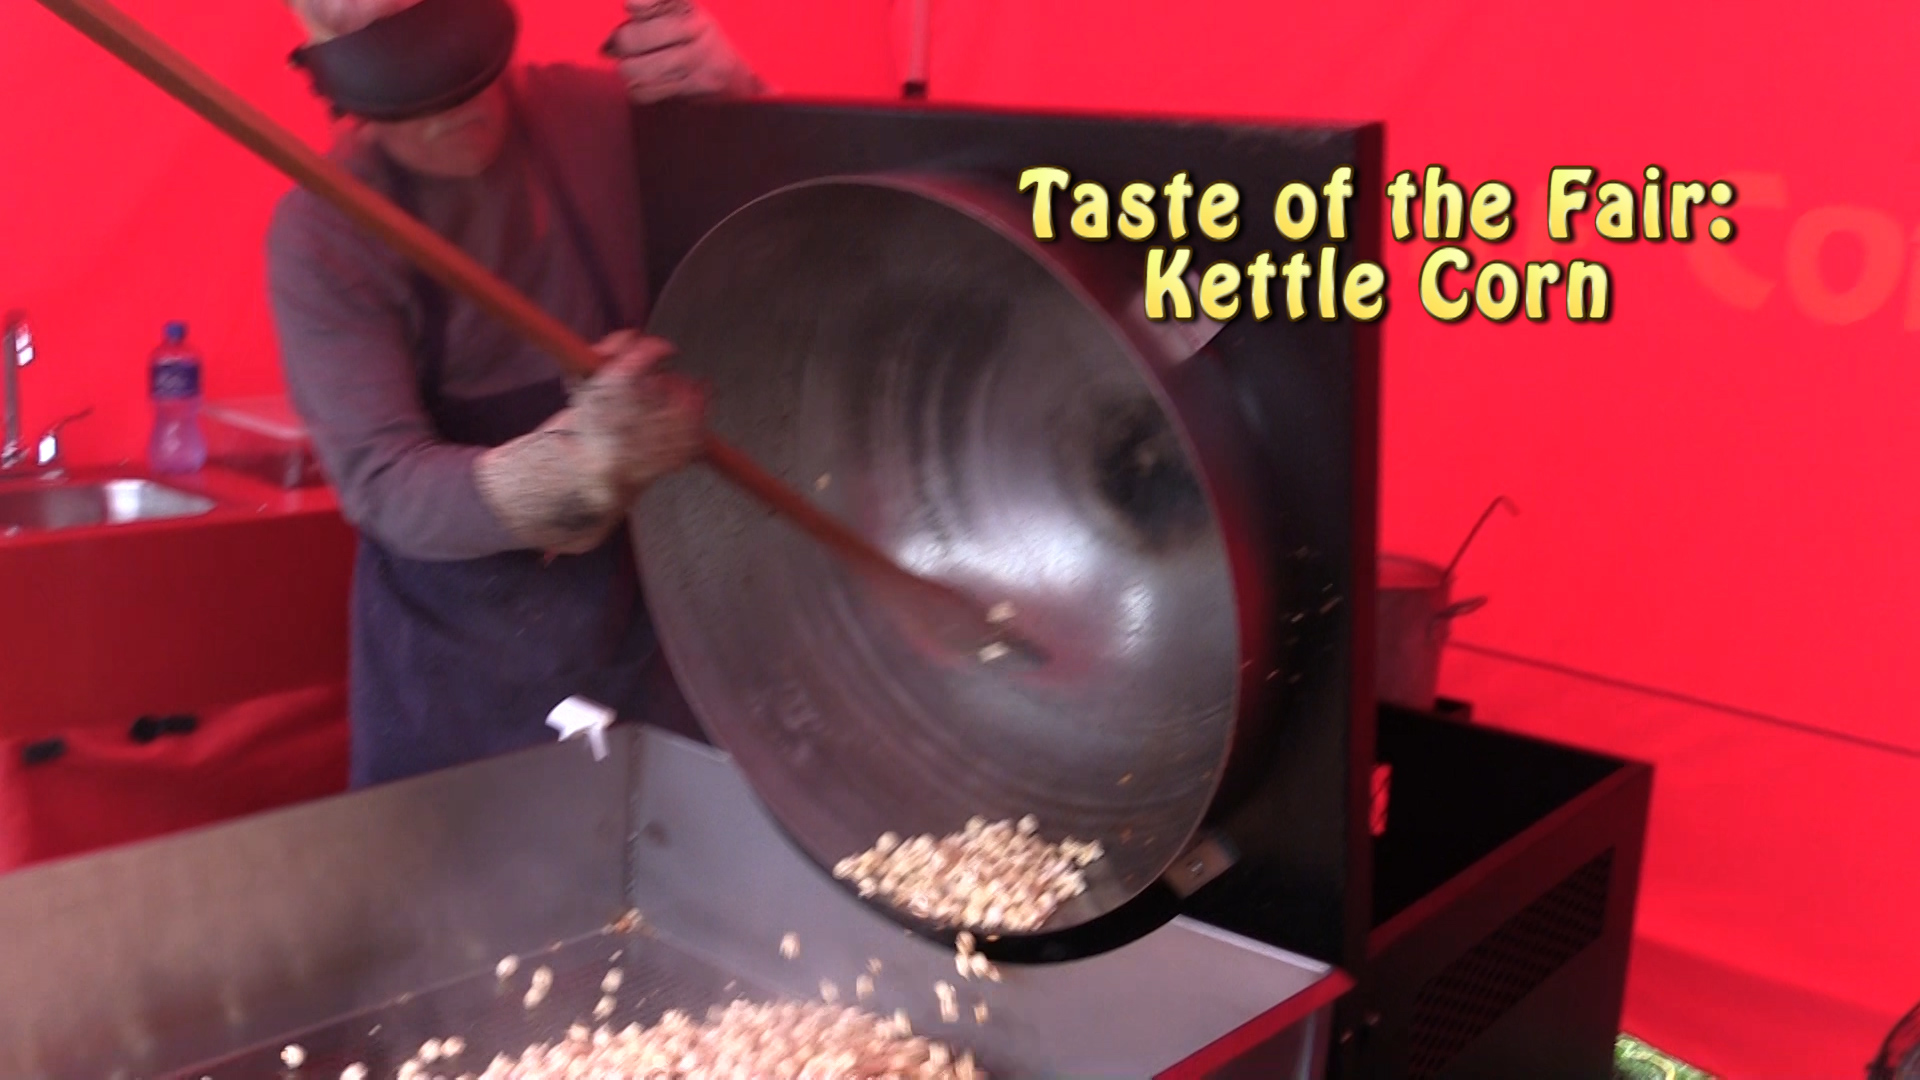 VIDEO - Kettle Corn at the Fair